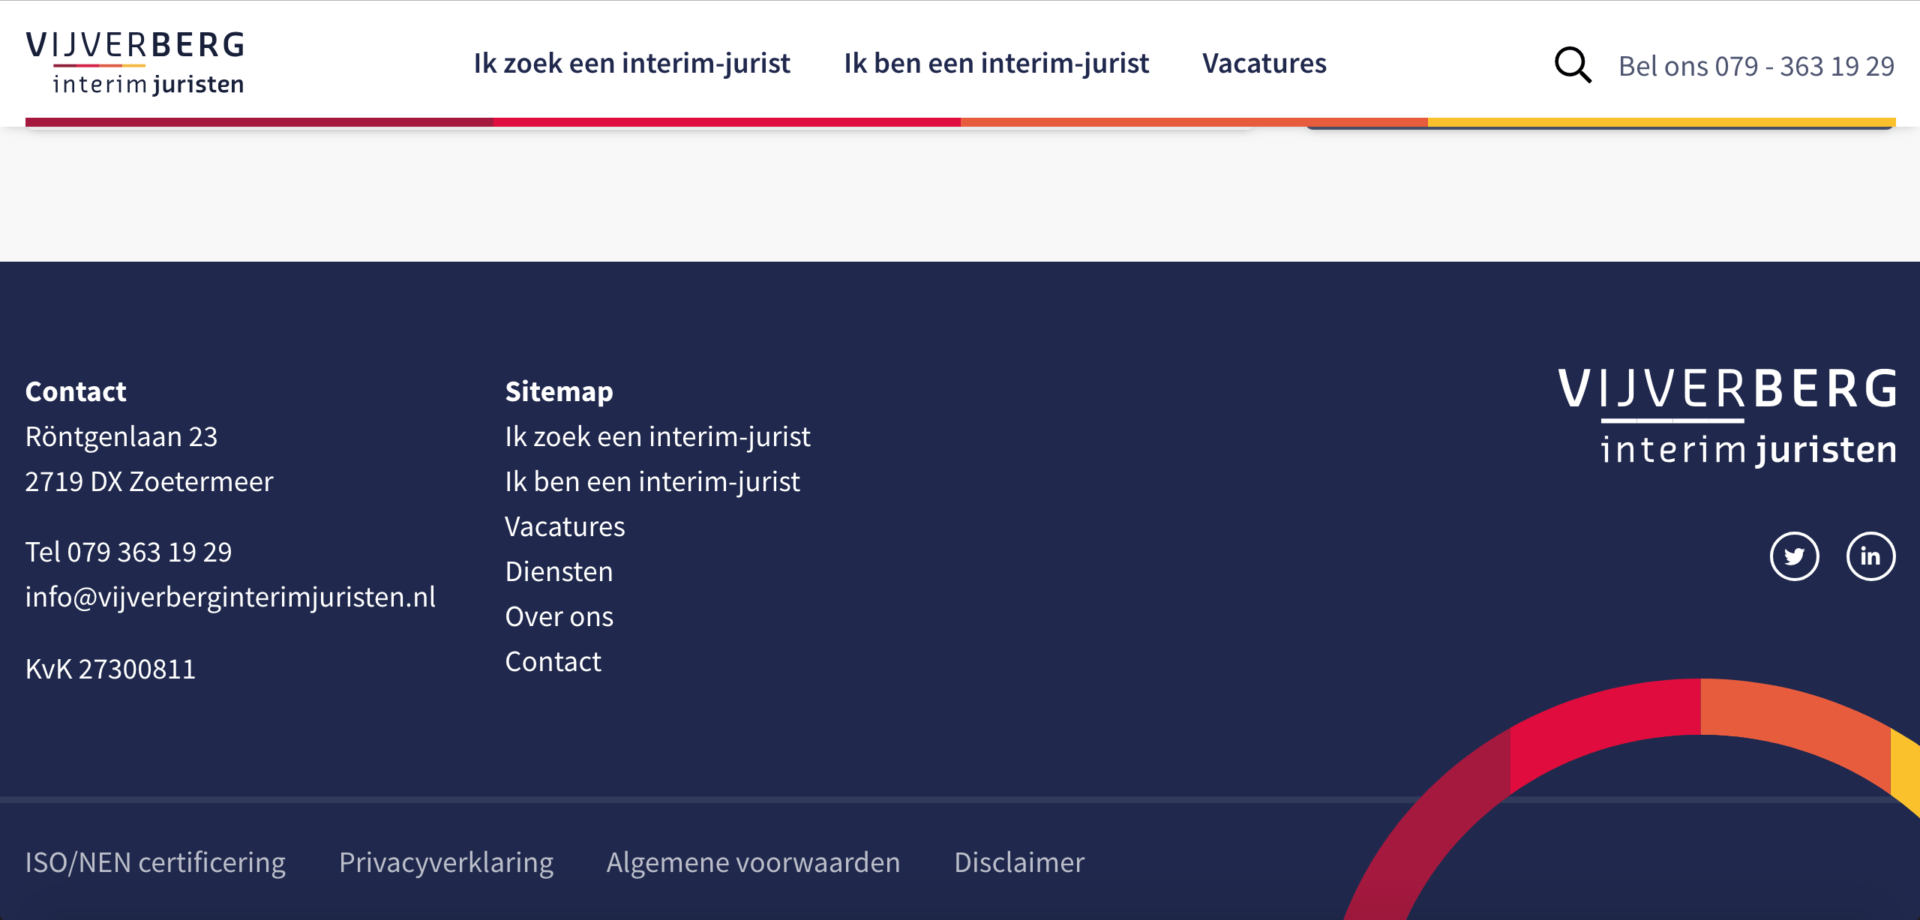 Vijverberg interim juristen vacature website screenshot 4